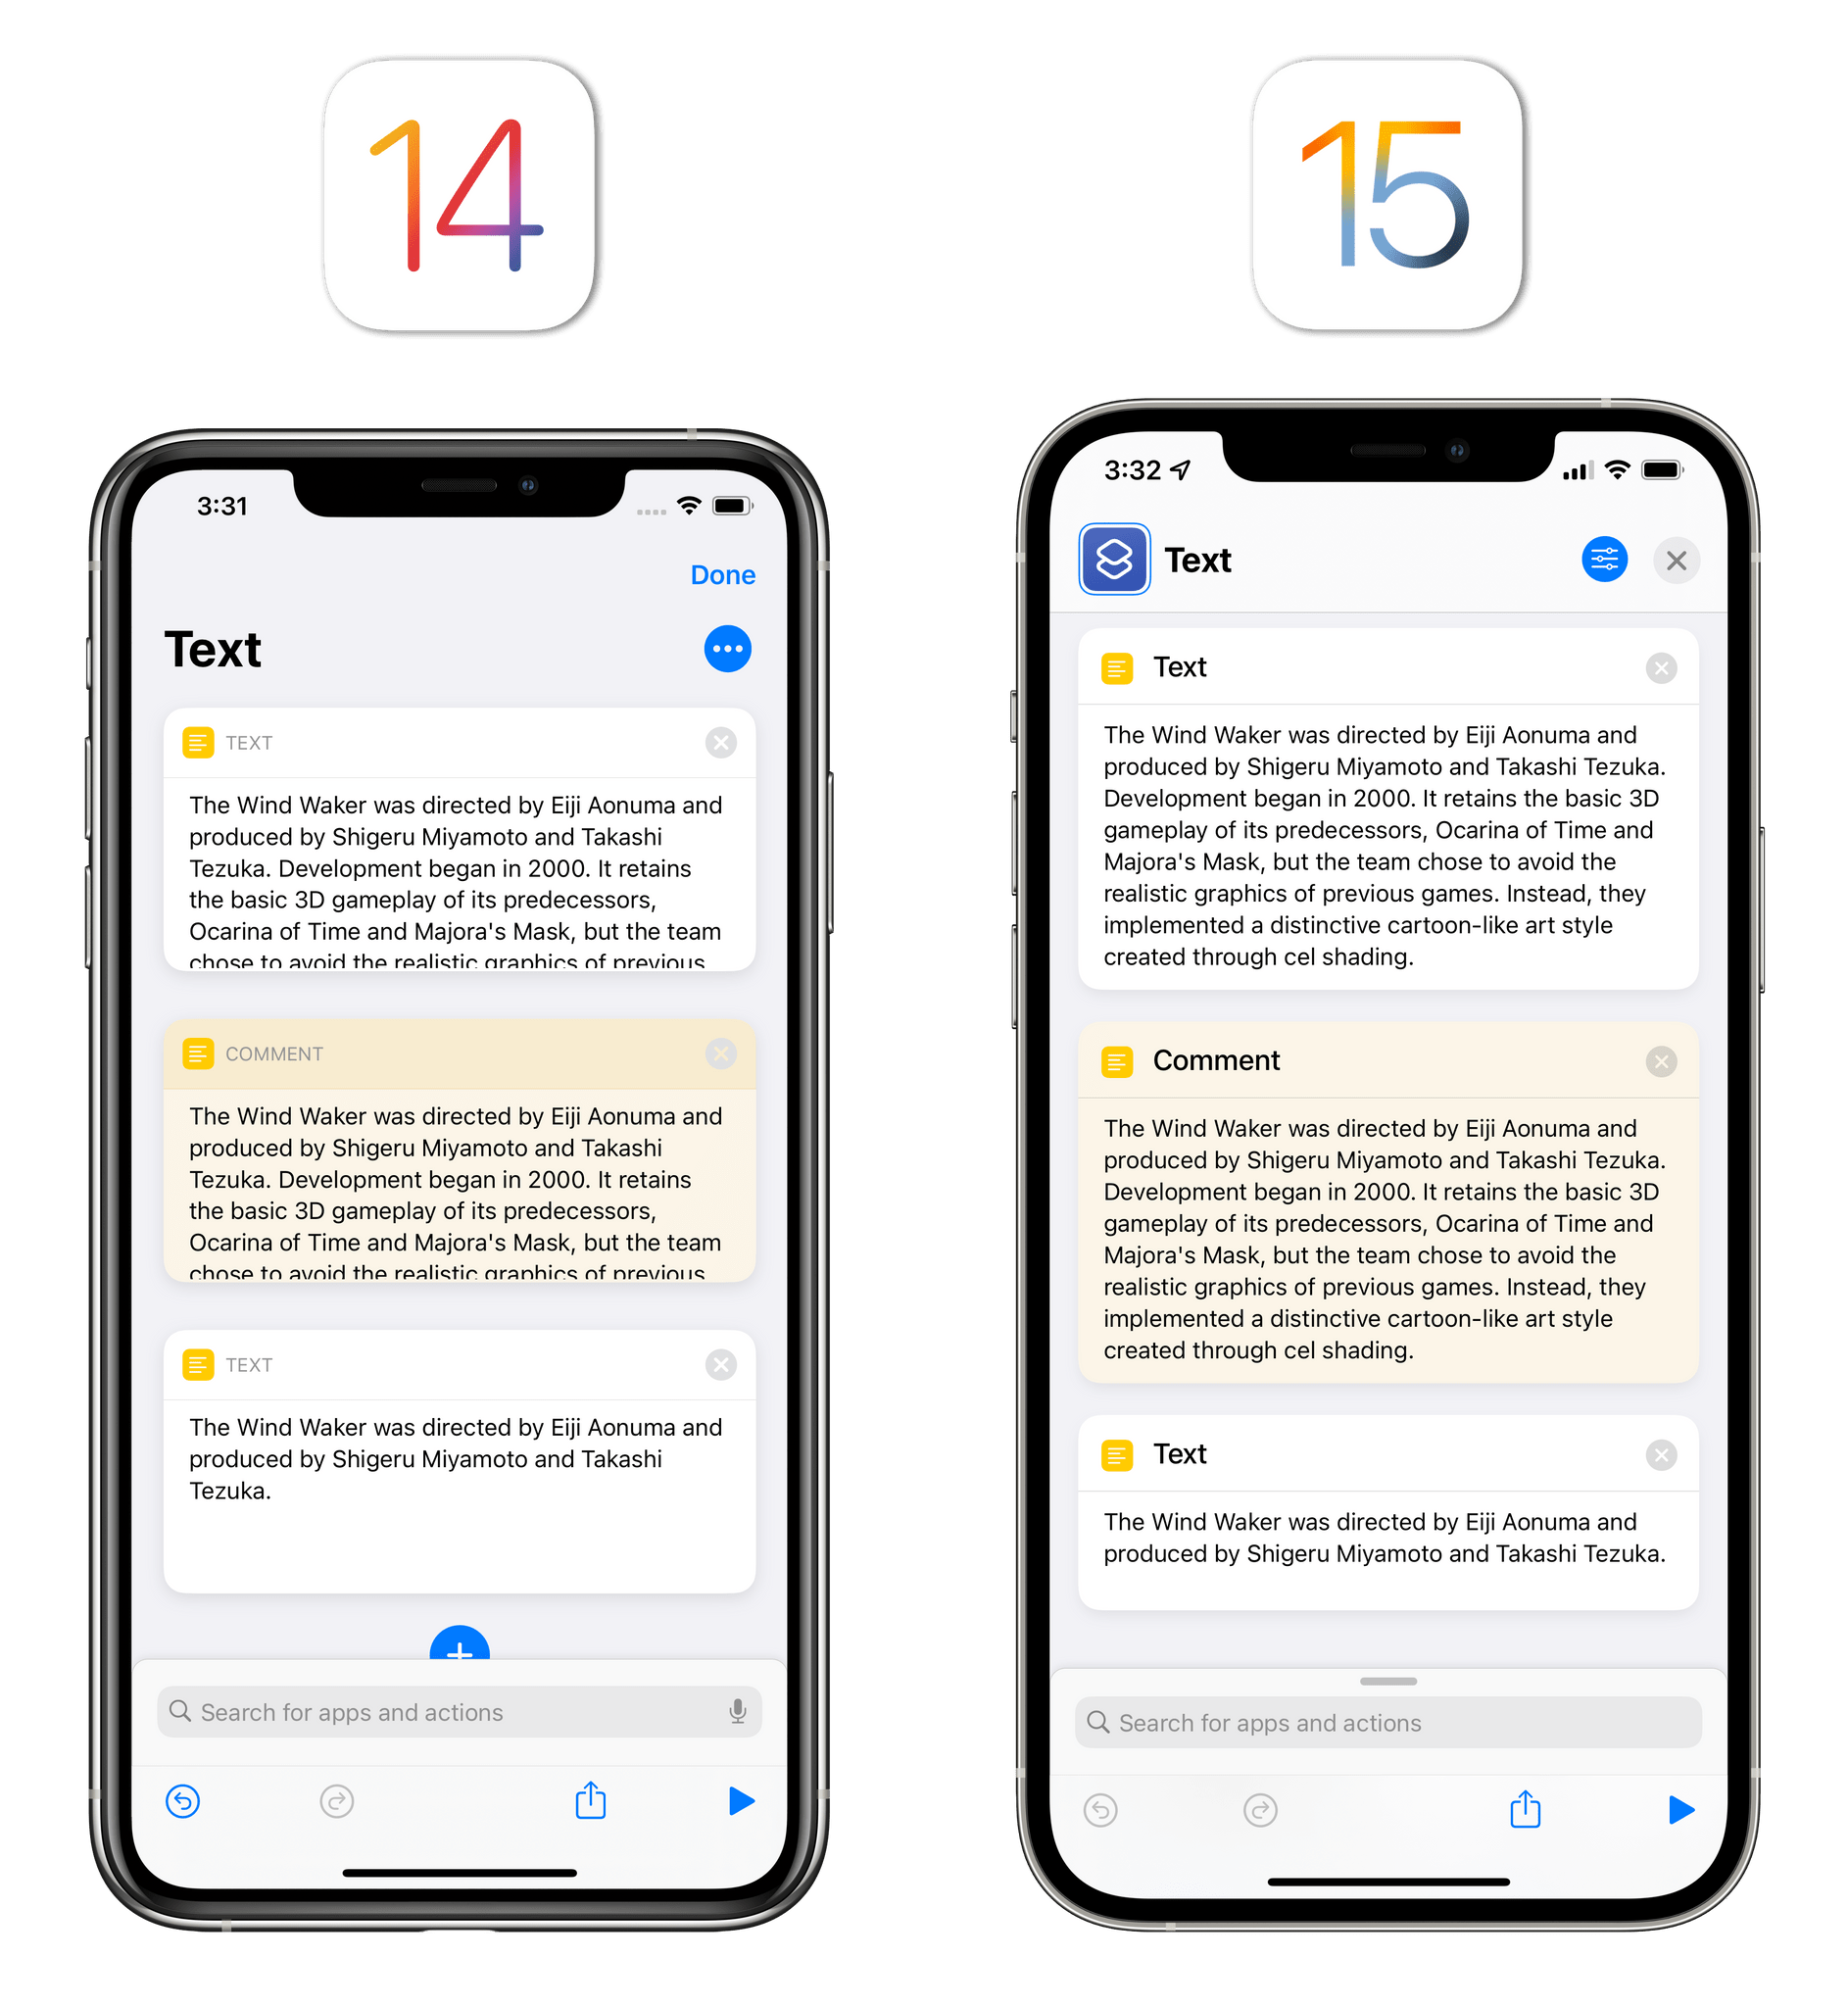 Text and Comment actions can now resize depending on content.